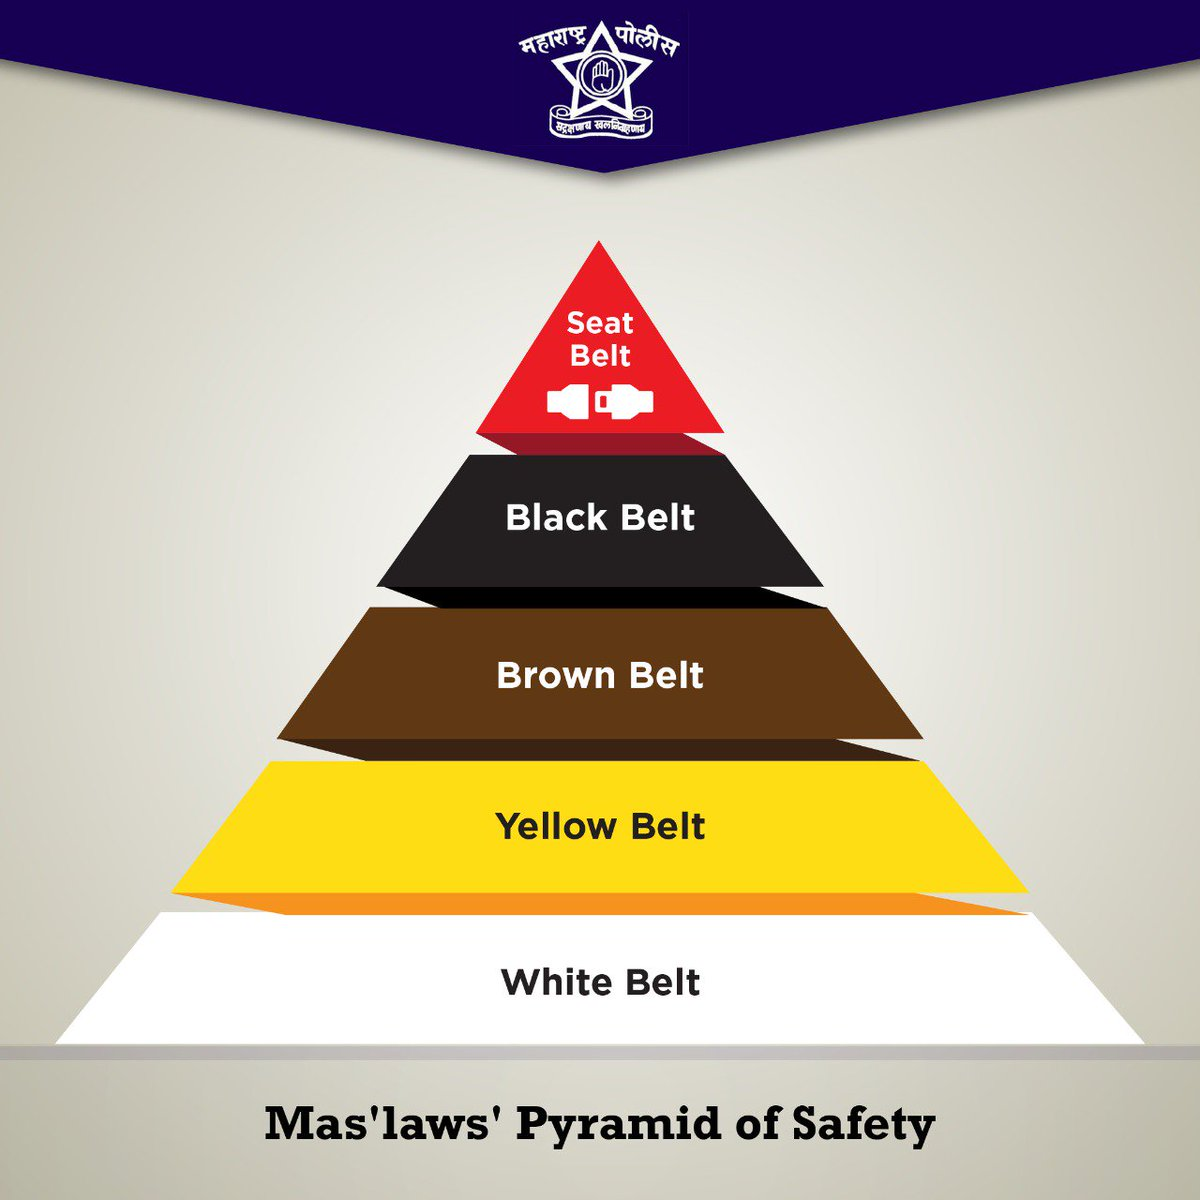 'Shaping' up a habit of safety. #WearYourSeatbelt #RoadSafety<br>http://pic.twitter.com/VdNWsrpLHM